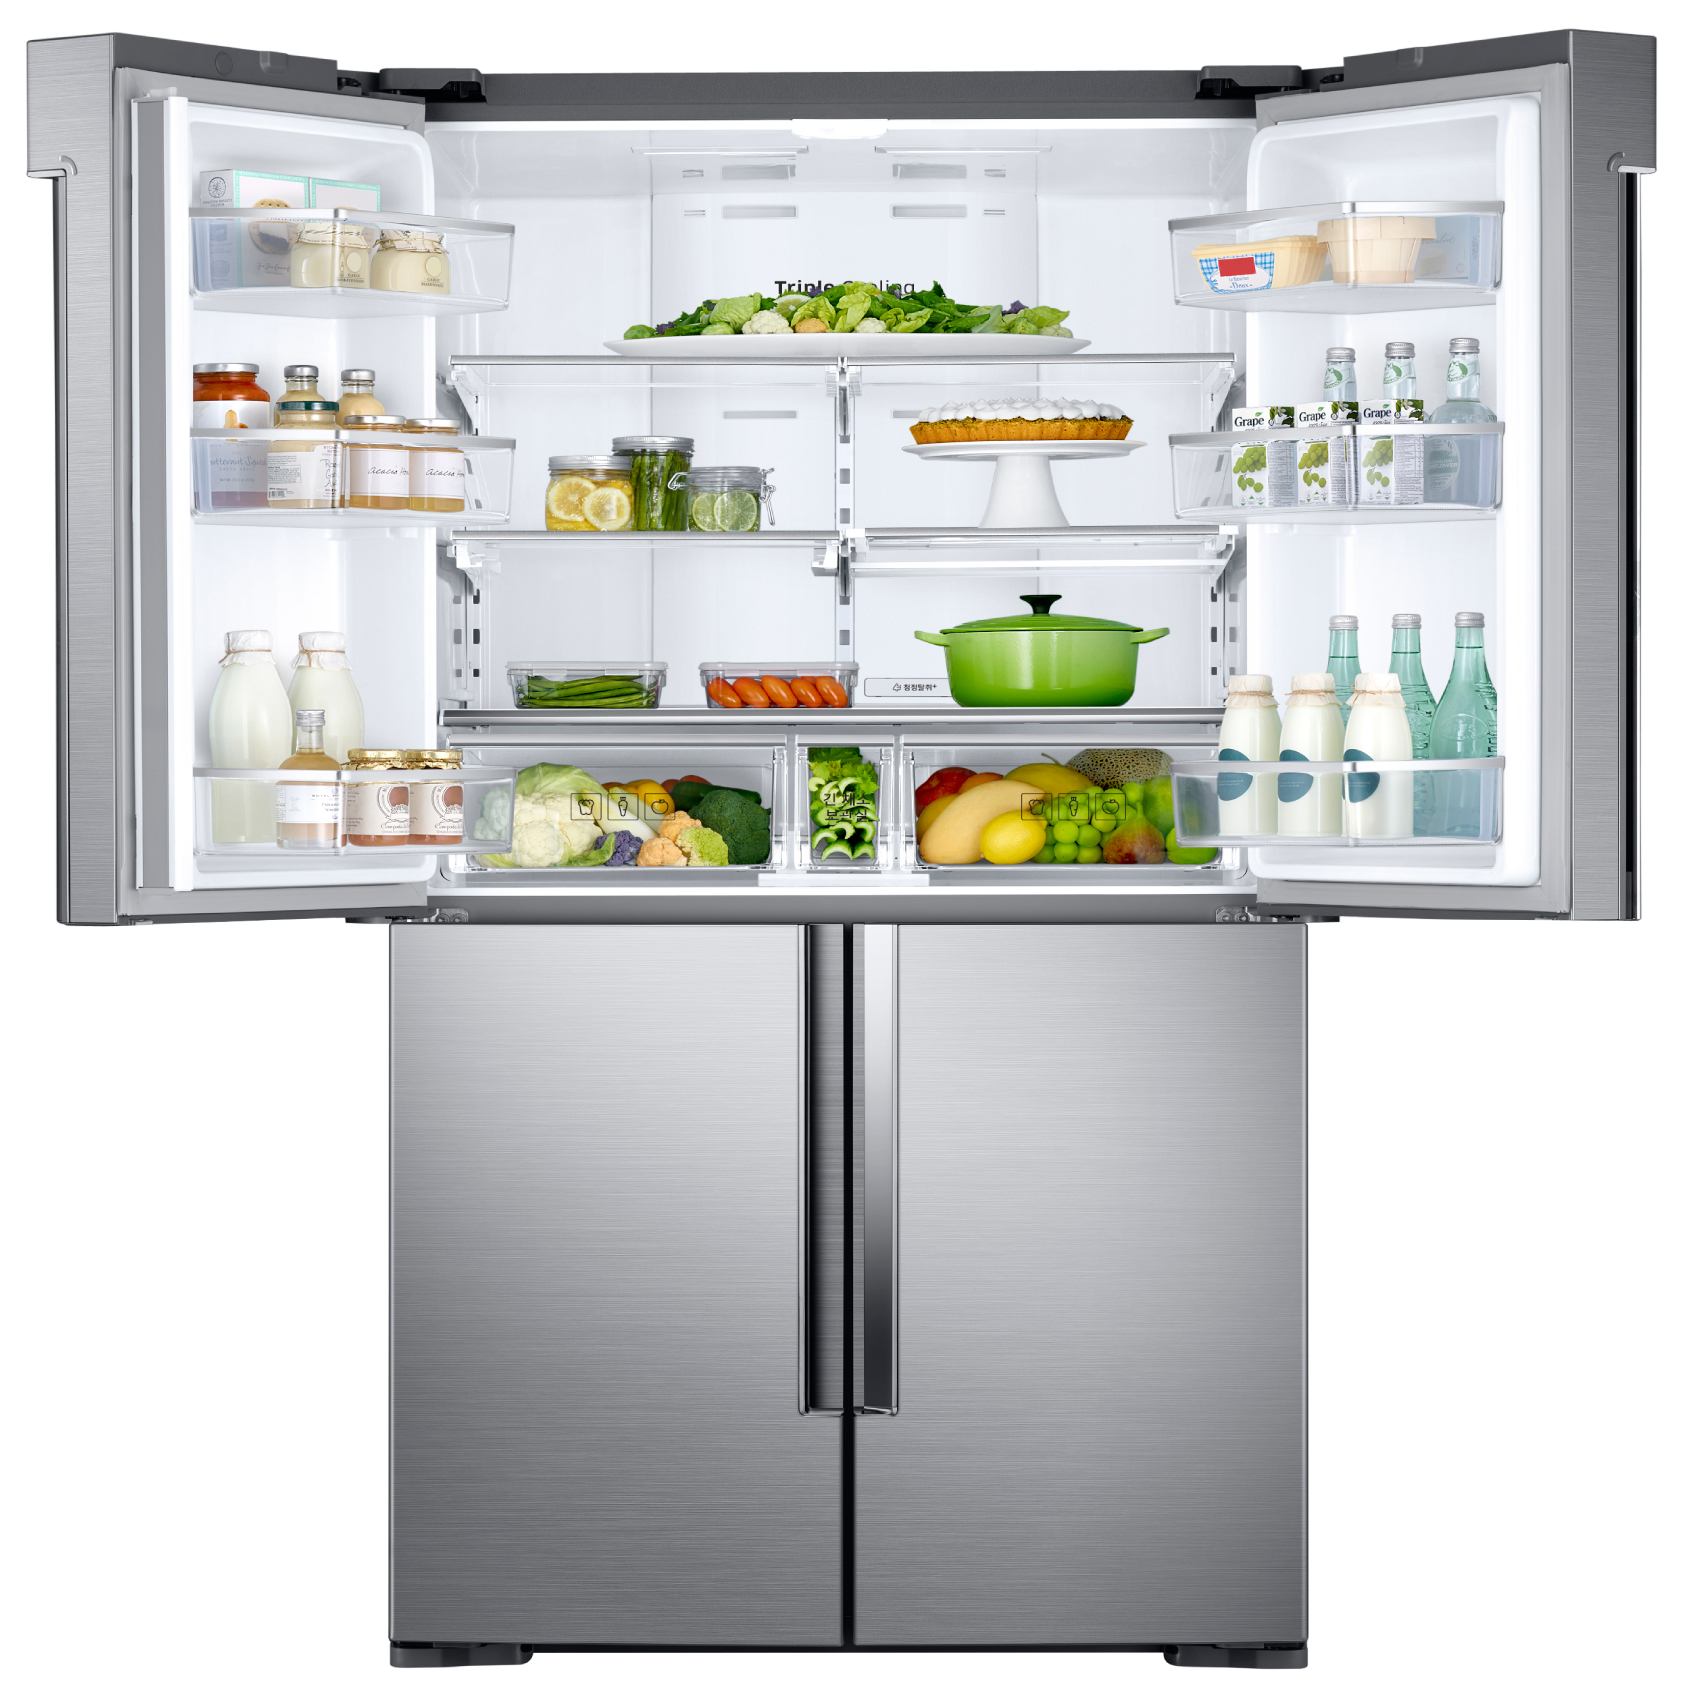 SAMSUNG FRIDGE SBS RF85K90N2S8 795L